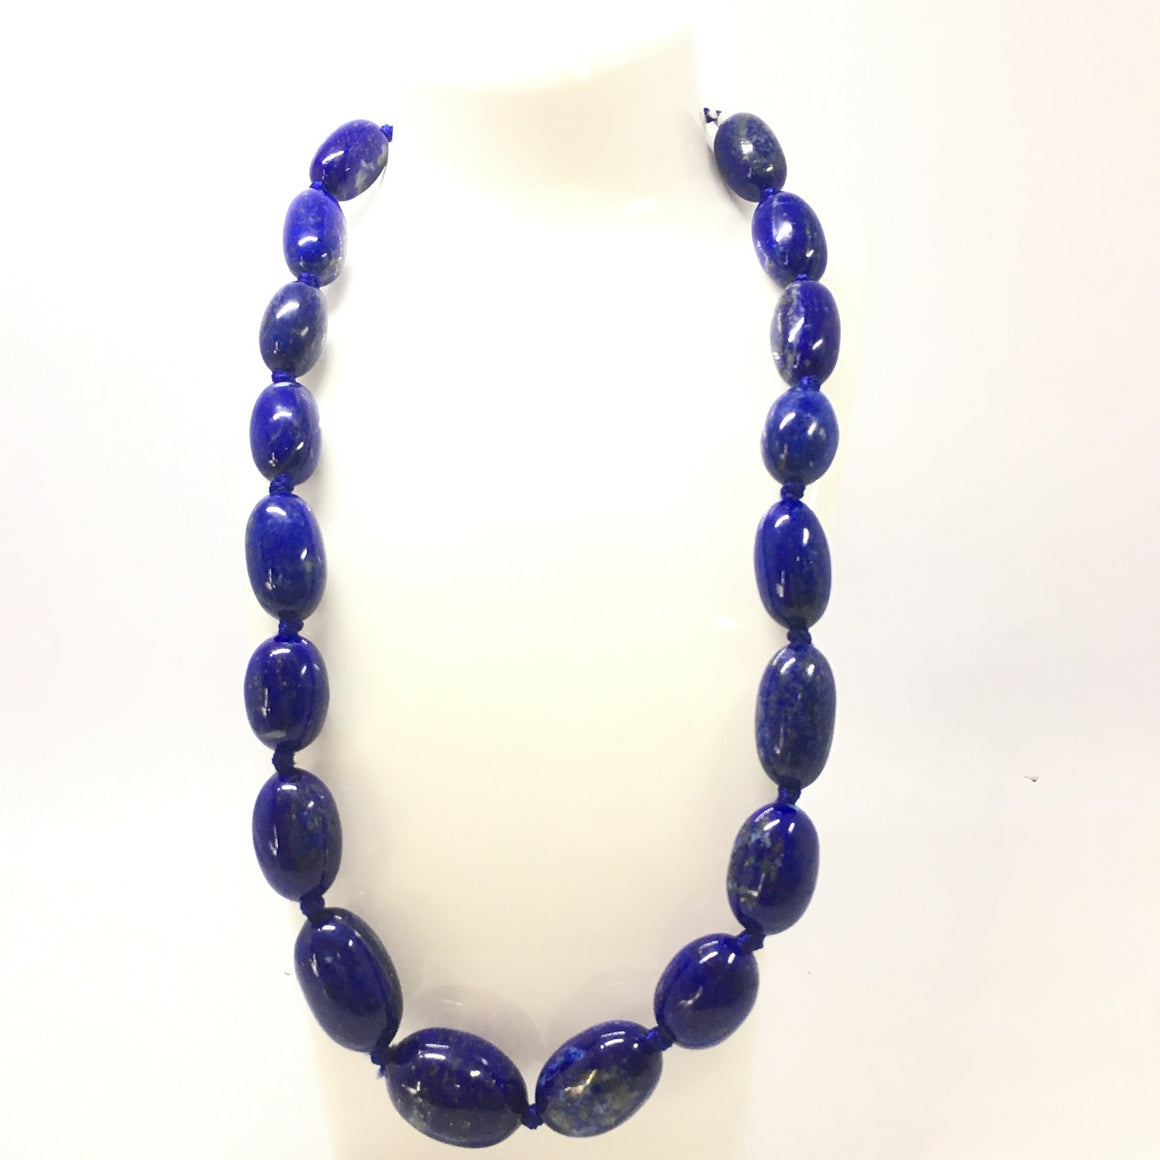 Lapis Lazuli Necklace - Lapis Necklace 19 Oval Beads - 640.5 ct